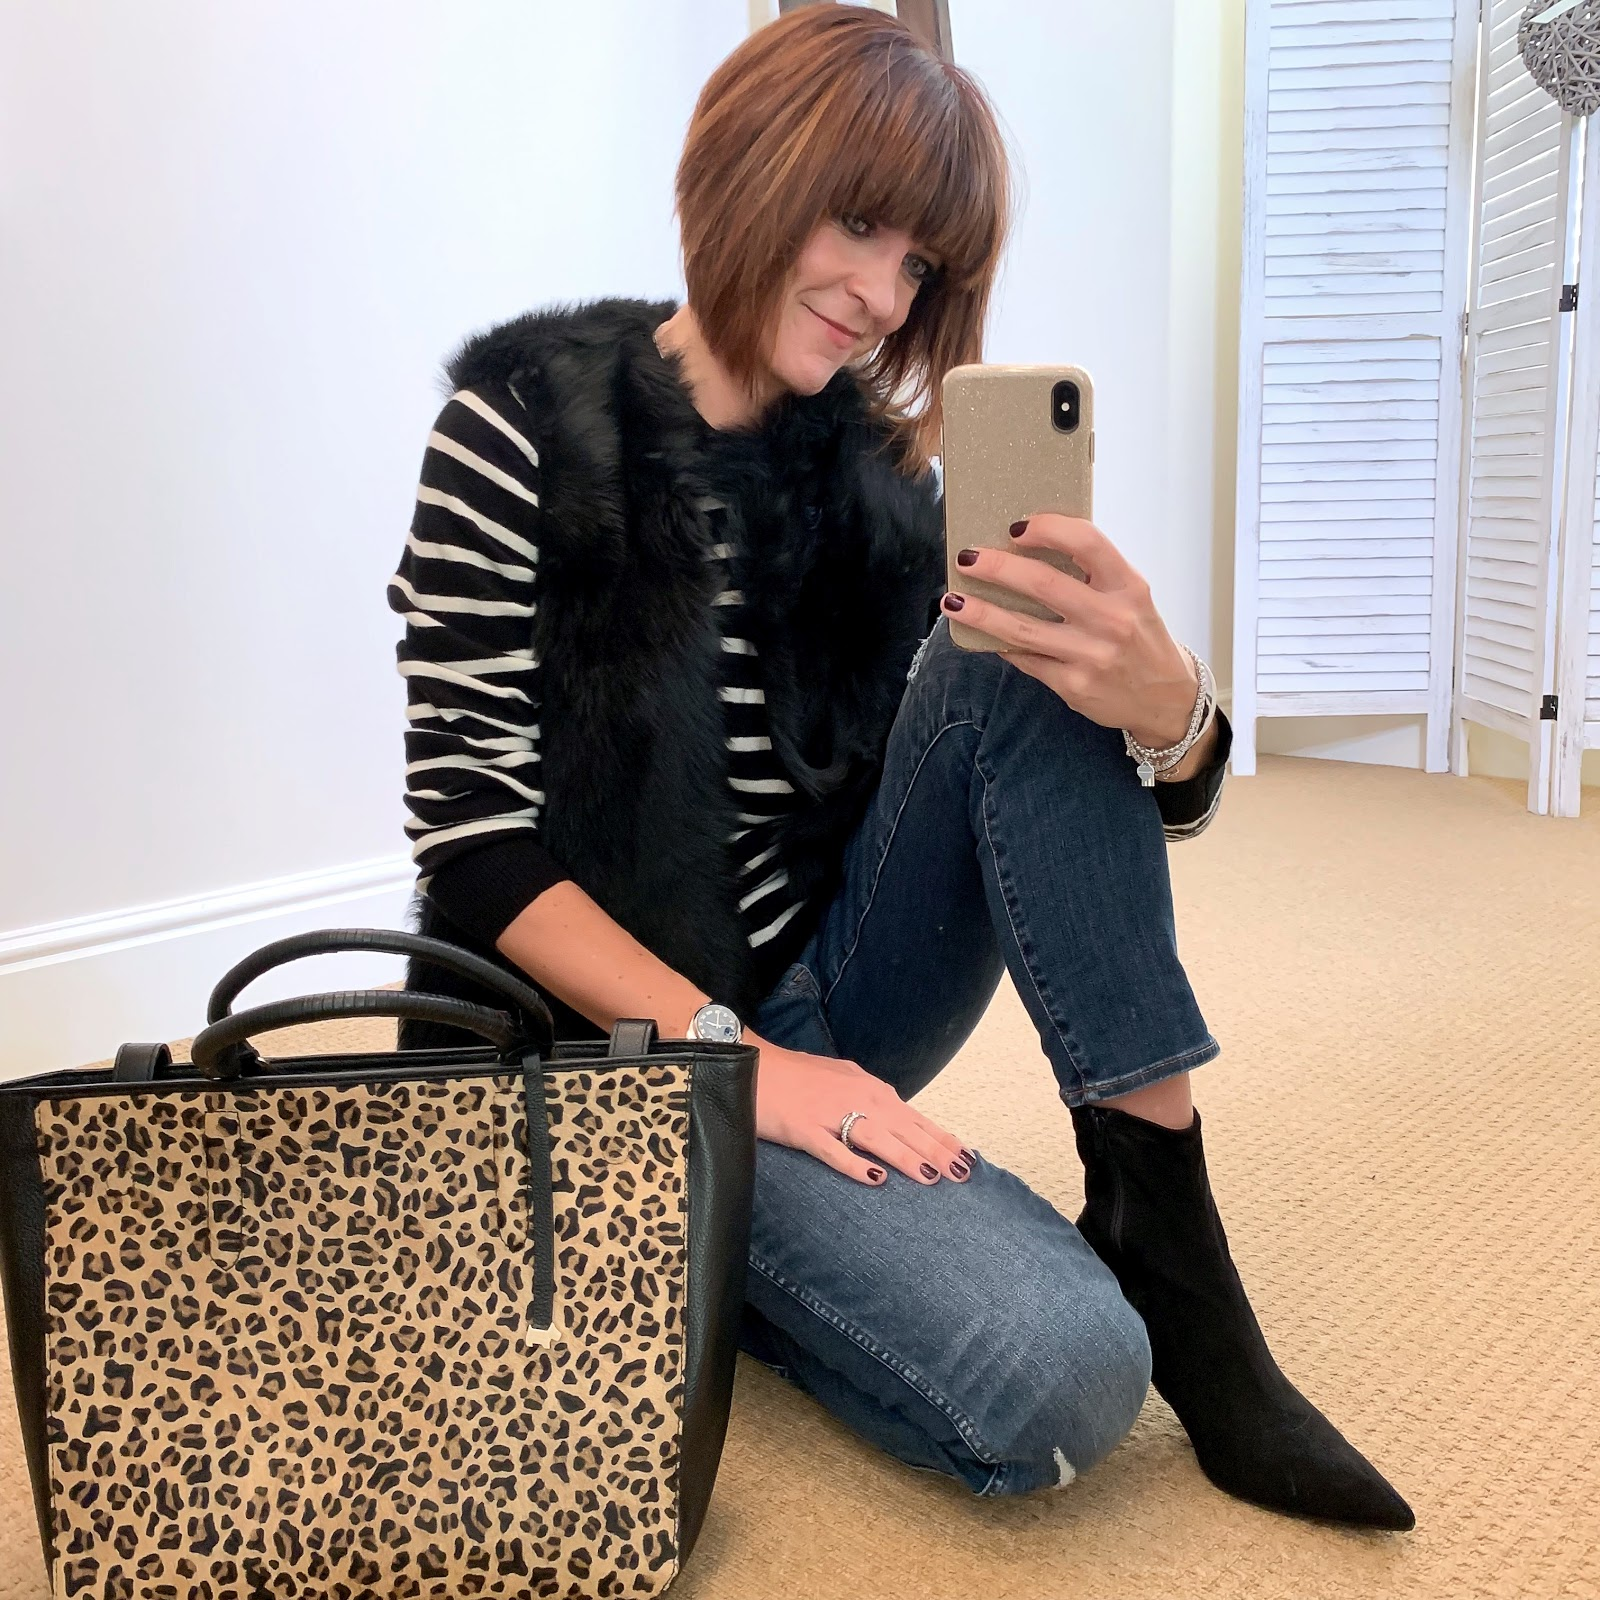 my midlife fashion, radley witney leopard print tote, the white company sheepskin gilet, marks and spencer pure cashmere stripe round neck jumper, marks and spencer stiletto heel velvet ankle boots, j crew vintage straight jeans rip and repair